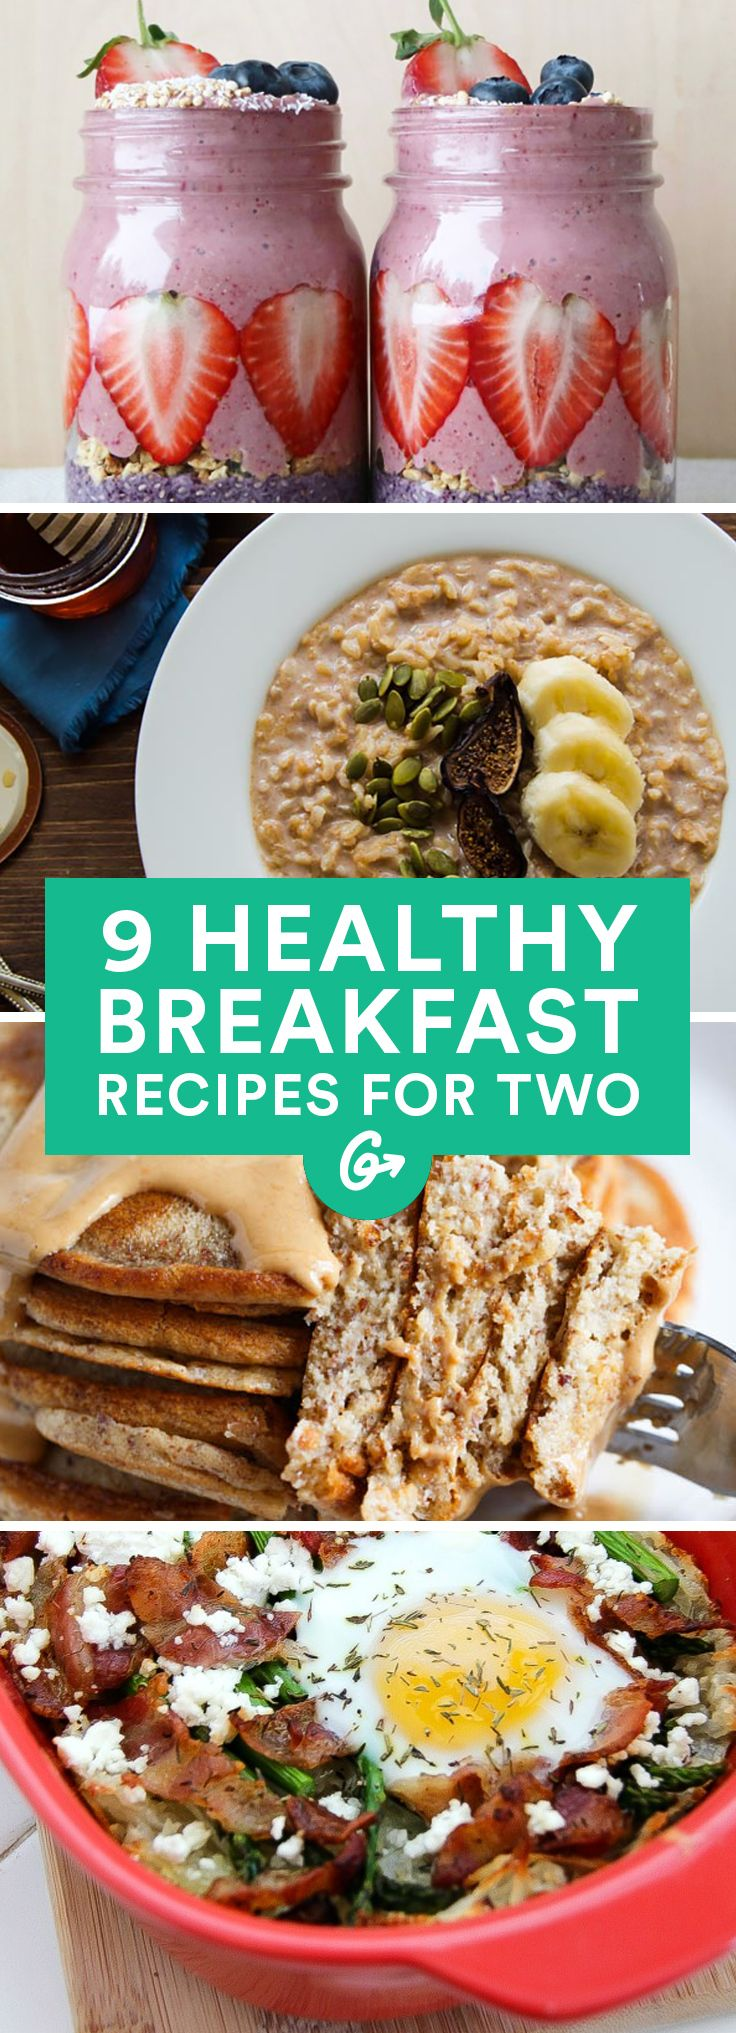 9 Healthy Breakfasts for Two (Because the Morning After) #healthy #breakfast #recipes http://greatist.com/eat/healthy-breakfast-recipes-for-two